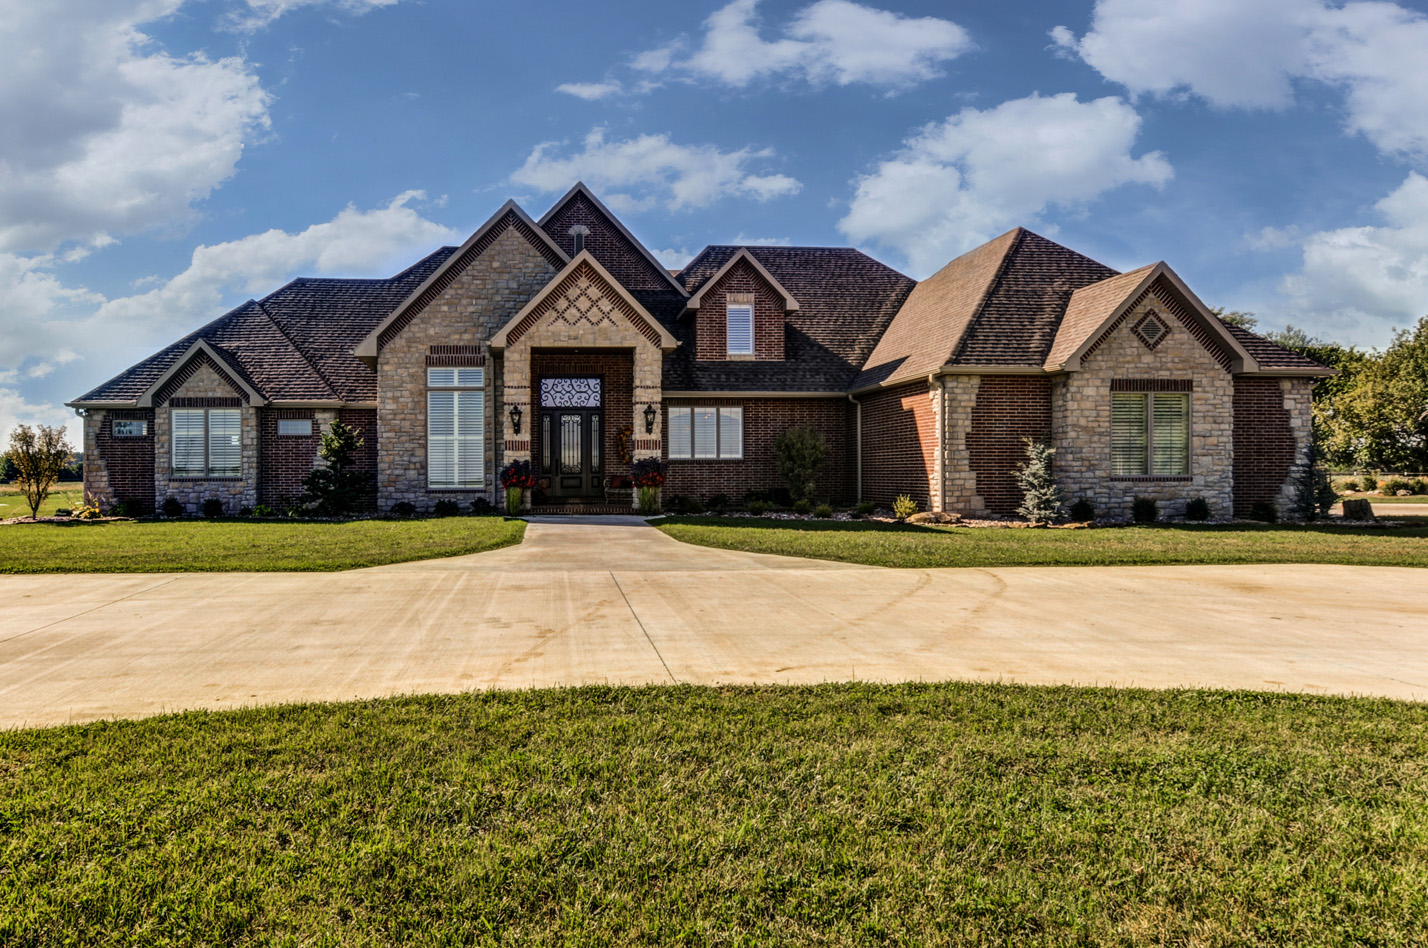 built-by-brett-custom-home-springfield-mo-13735-lawrence-2100-exterior-001.jpg